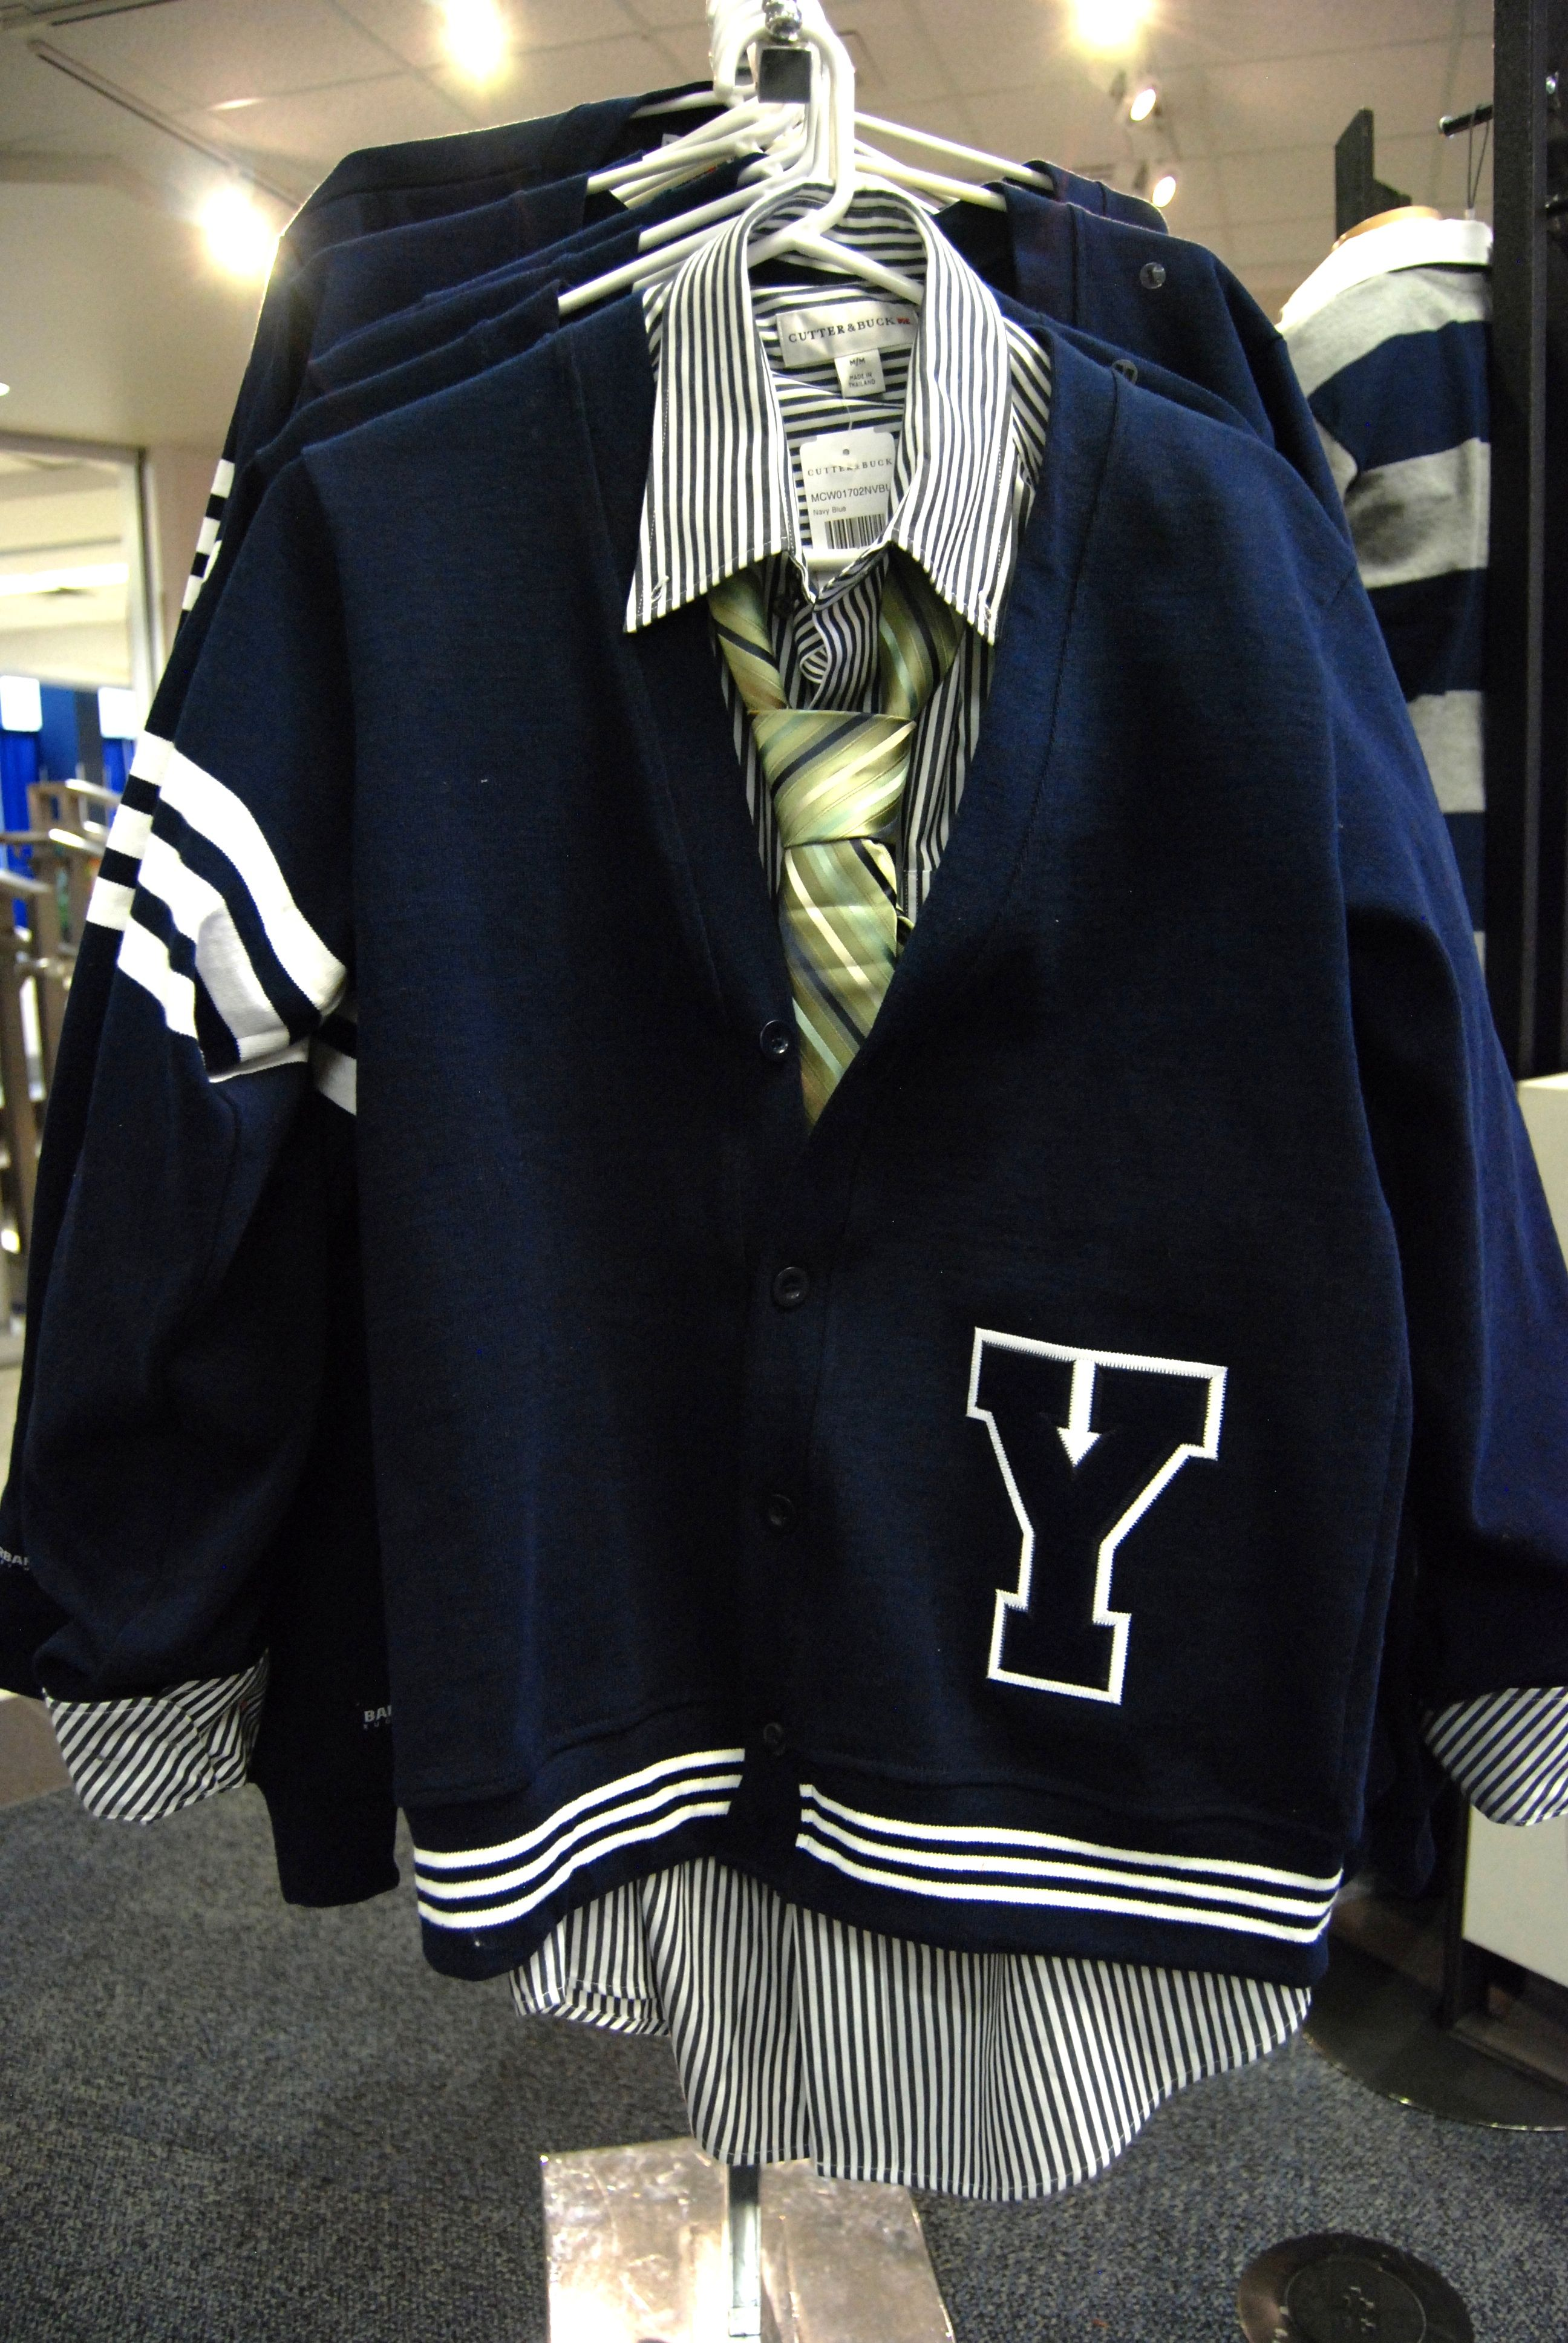 For him: BYU collegiate style, preppy, classic, Letterman rugby cardigan.